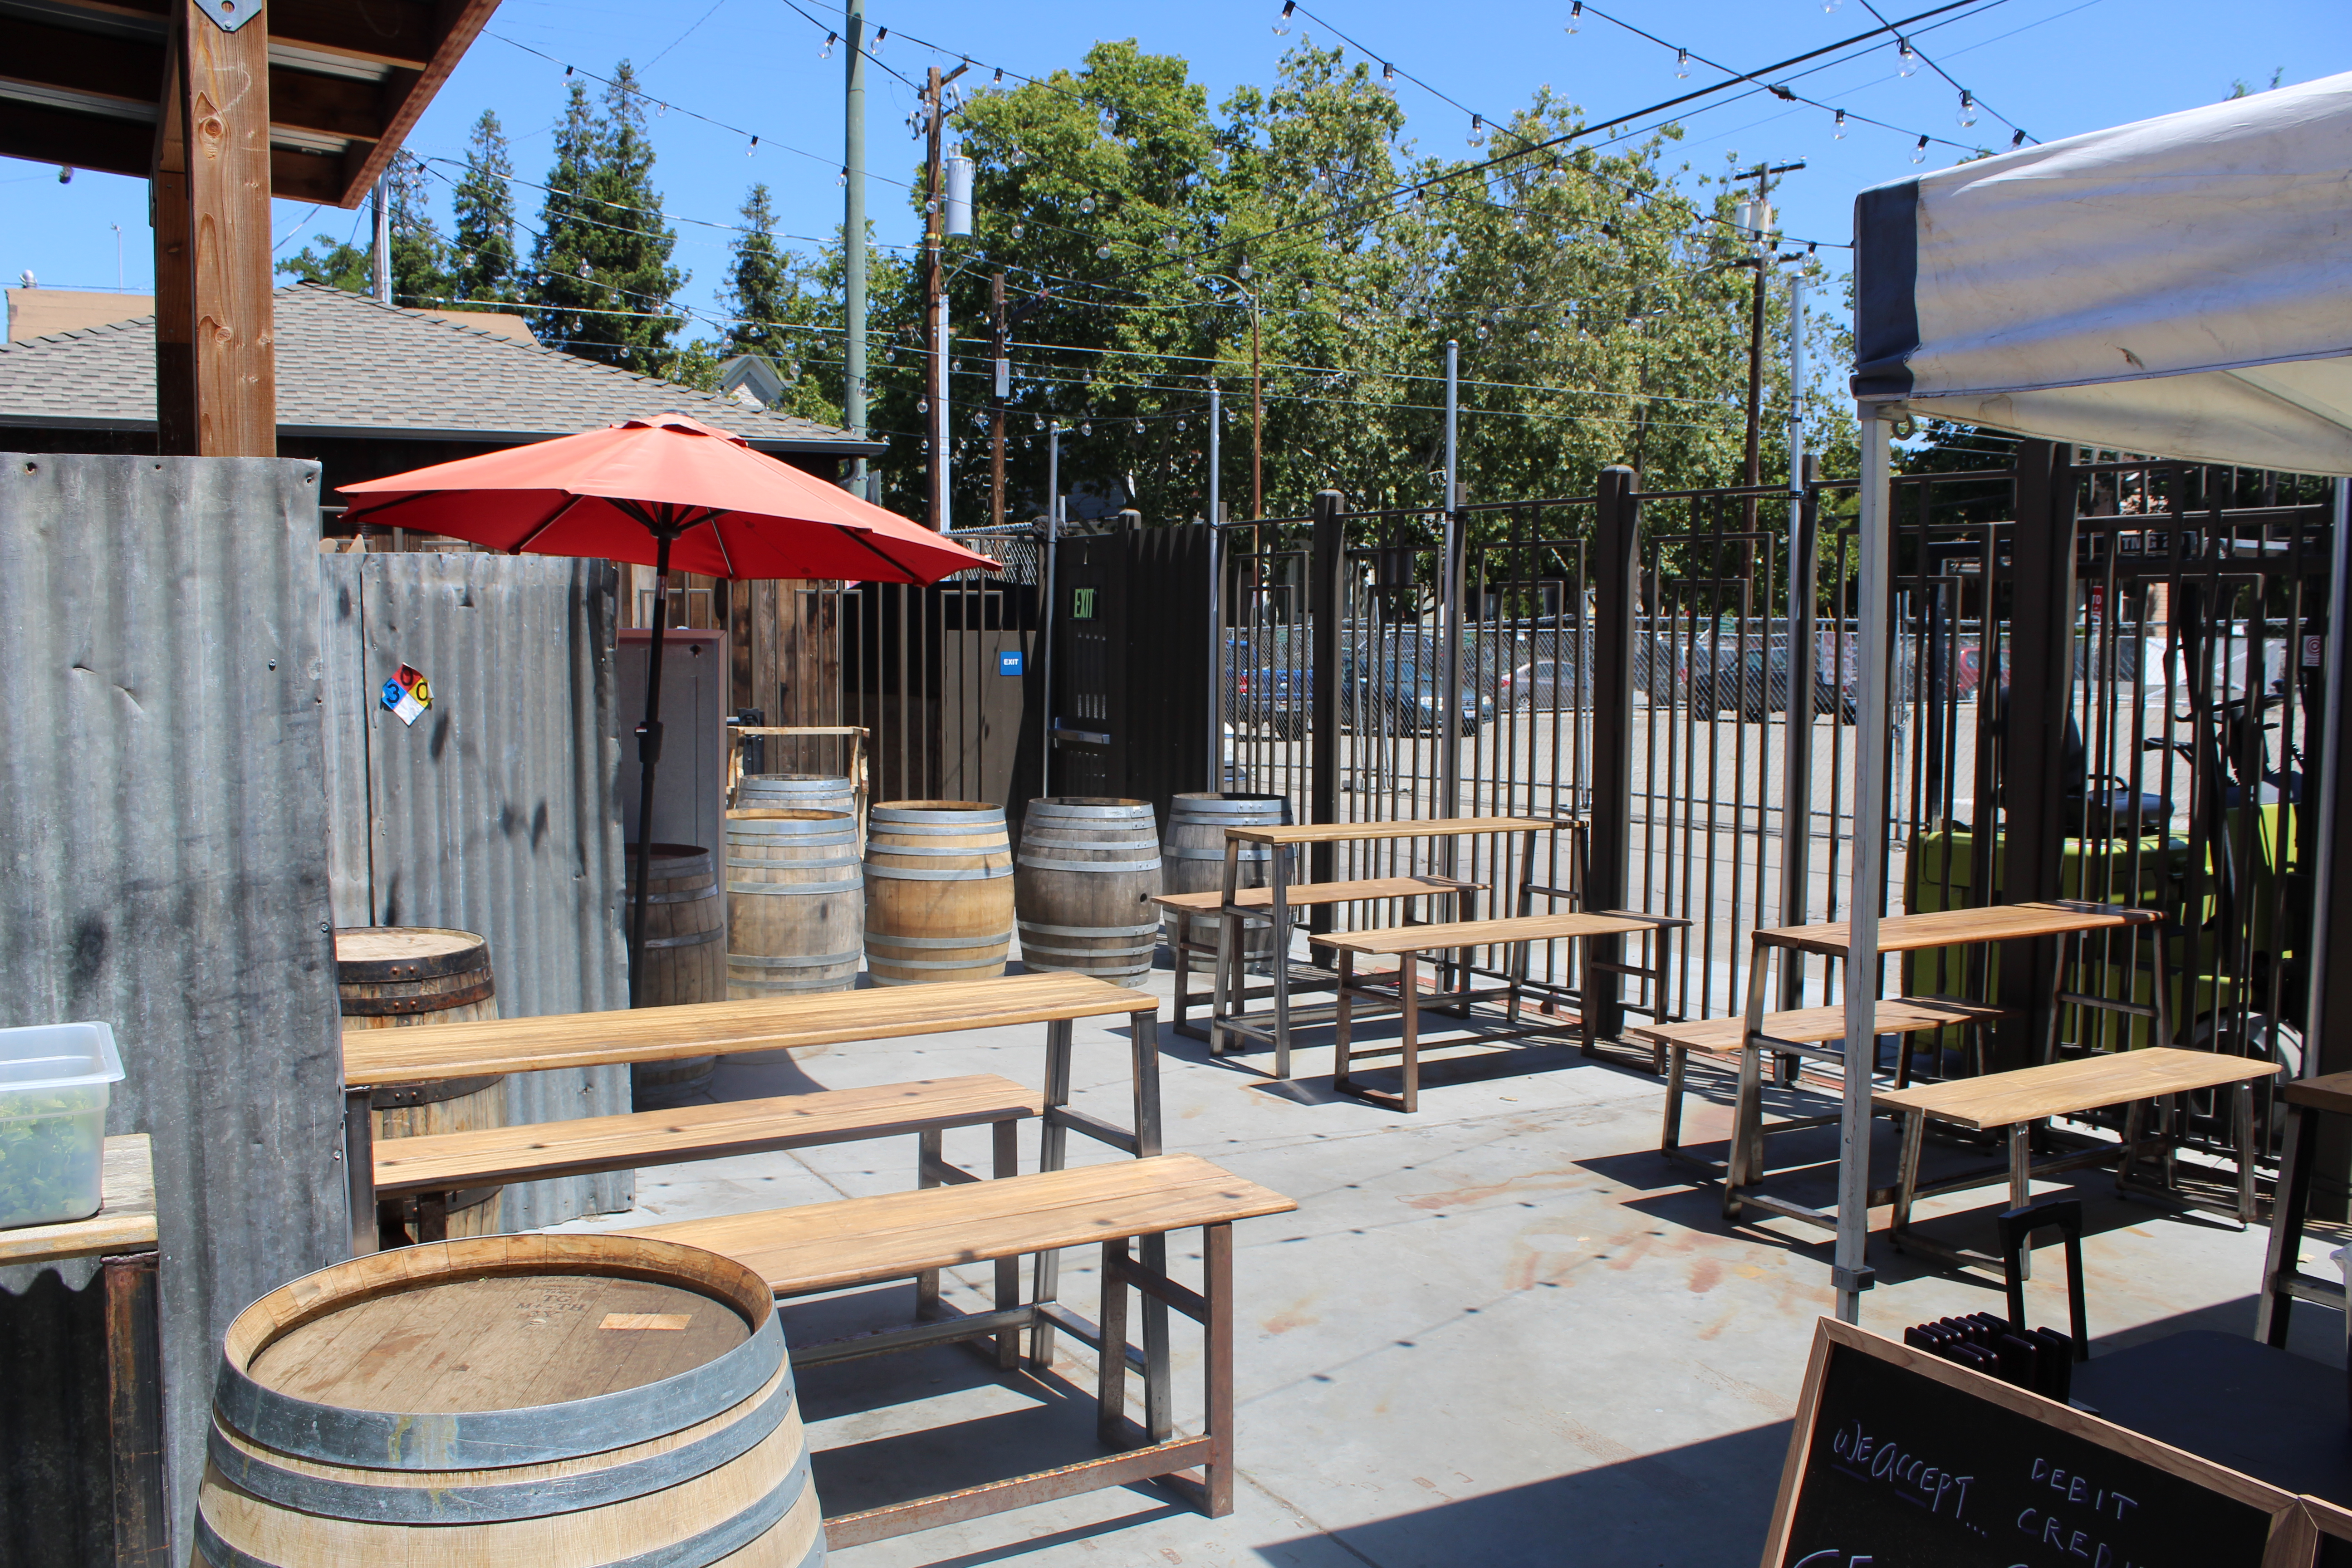 Photo #10 Indoor/Outdoor Patio Space at Camino Brewing Co.